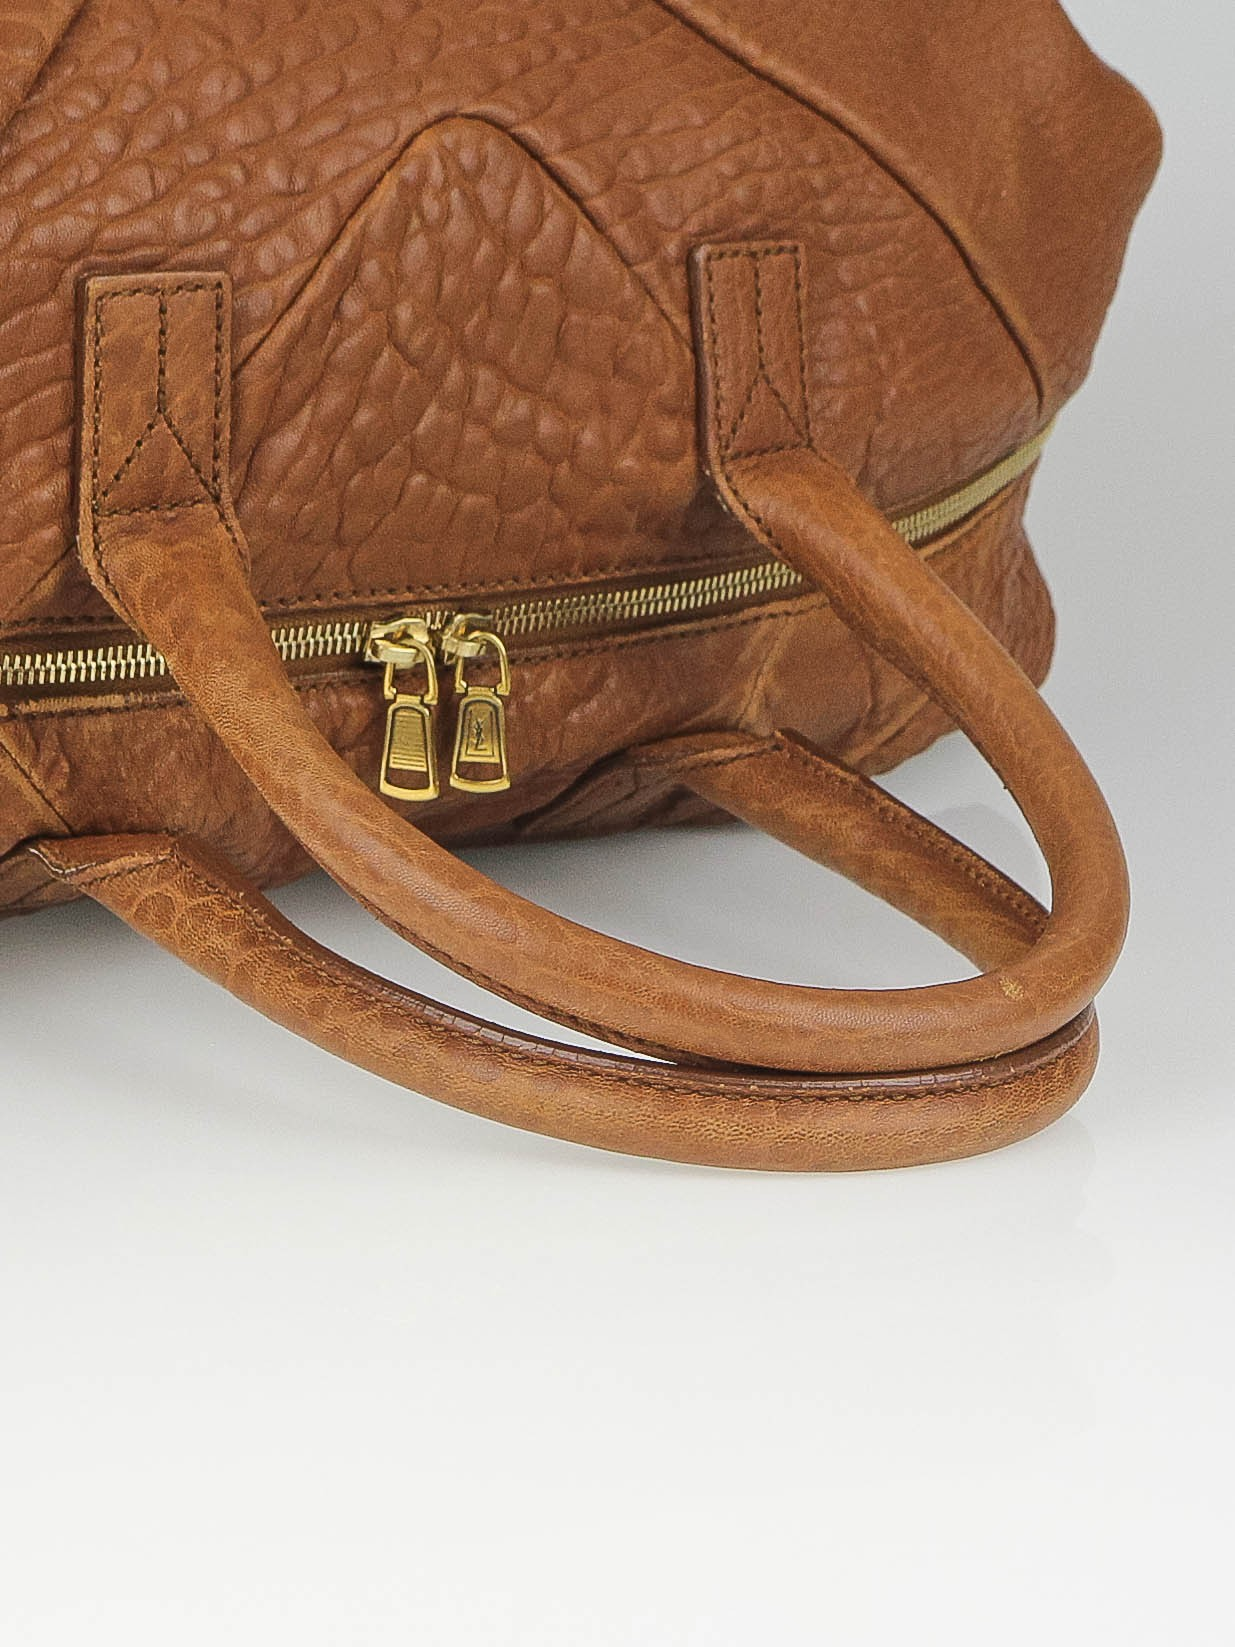 Yves Saint Laurent Brown Pebbled Leather Easy Y Zip Tote Bag ...